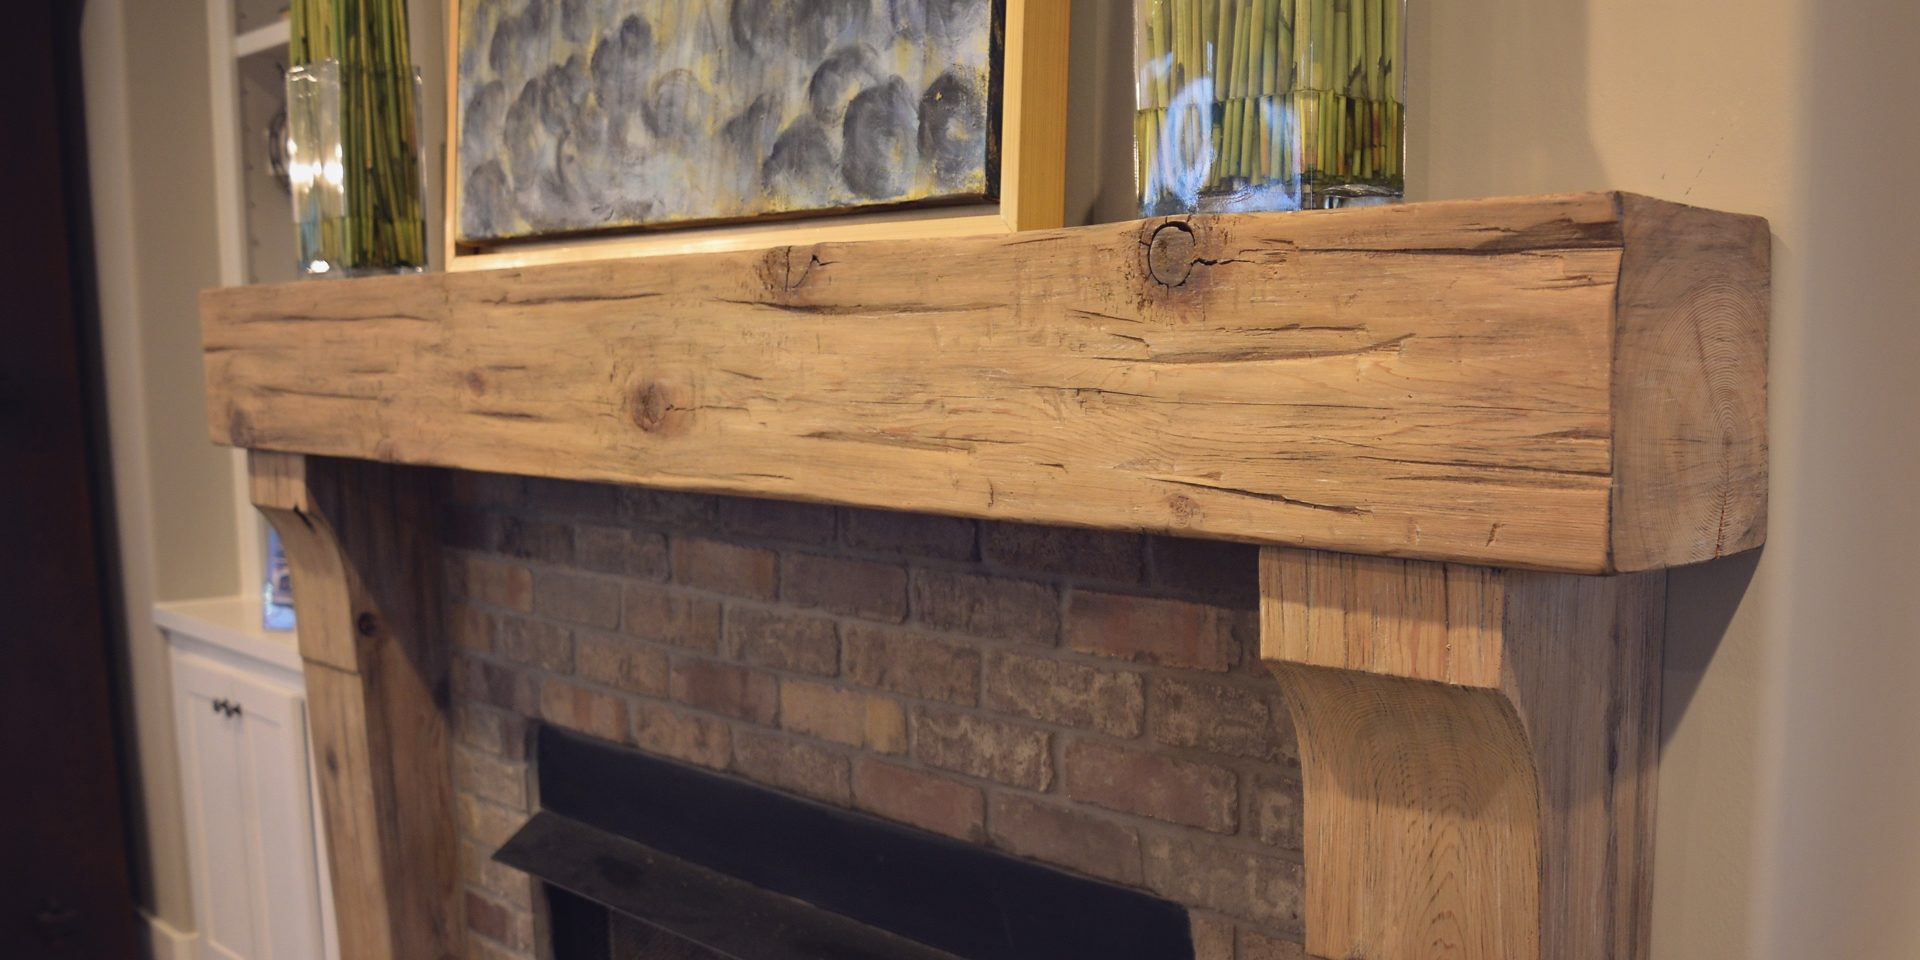 Astonishing Burrus Company Hand Crafted Timber Mantels And Custom Download Free Architecture Designs Itiscsunscenecom